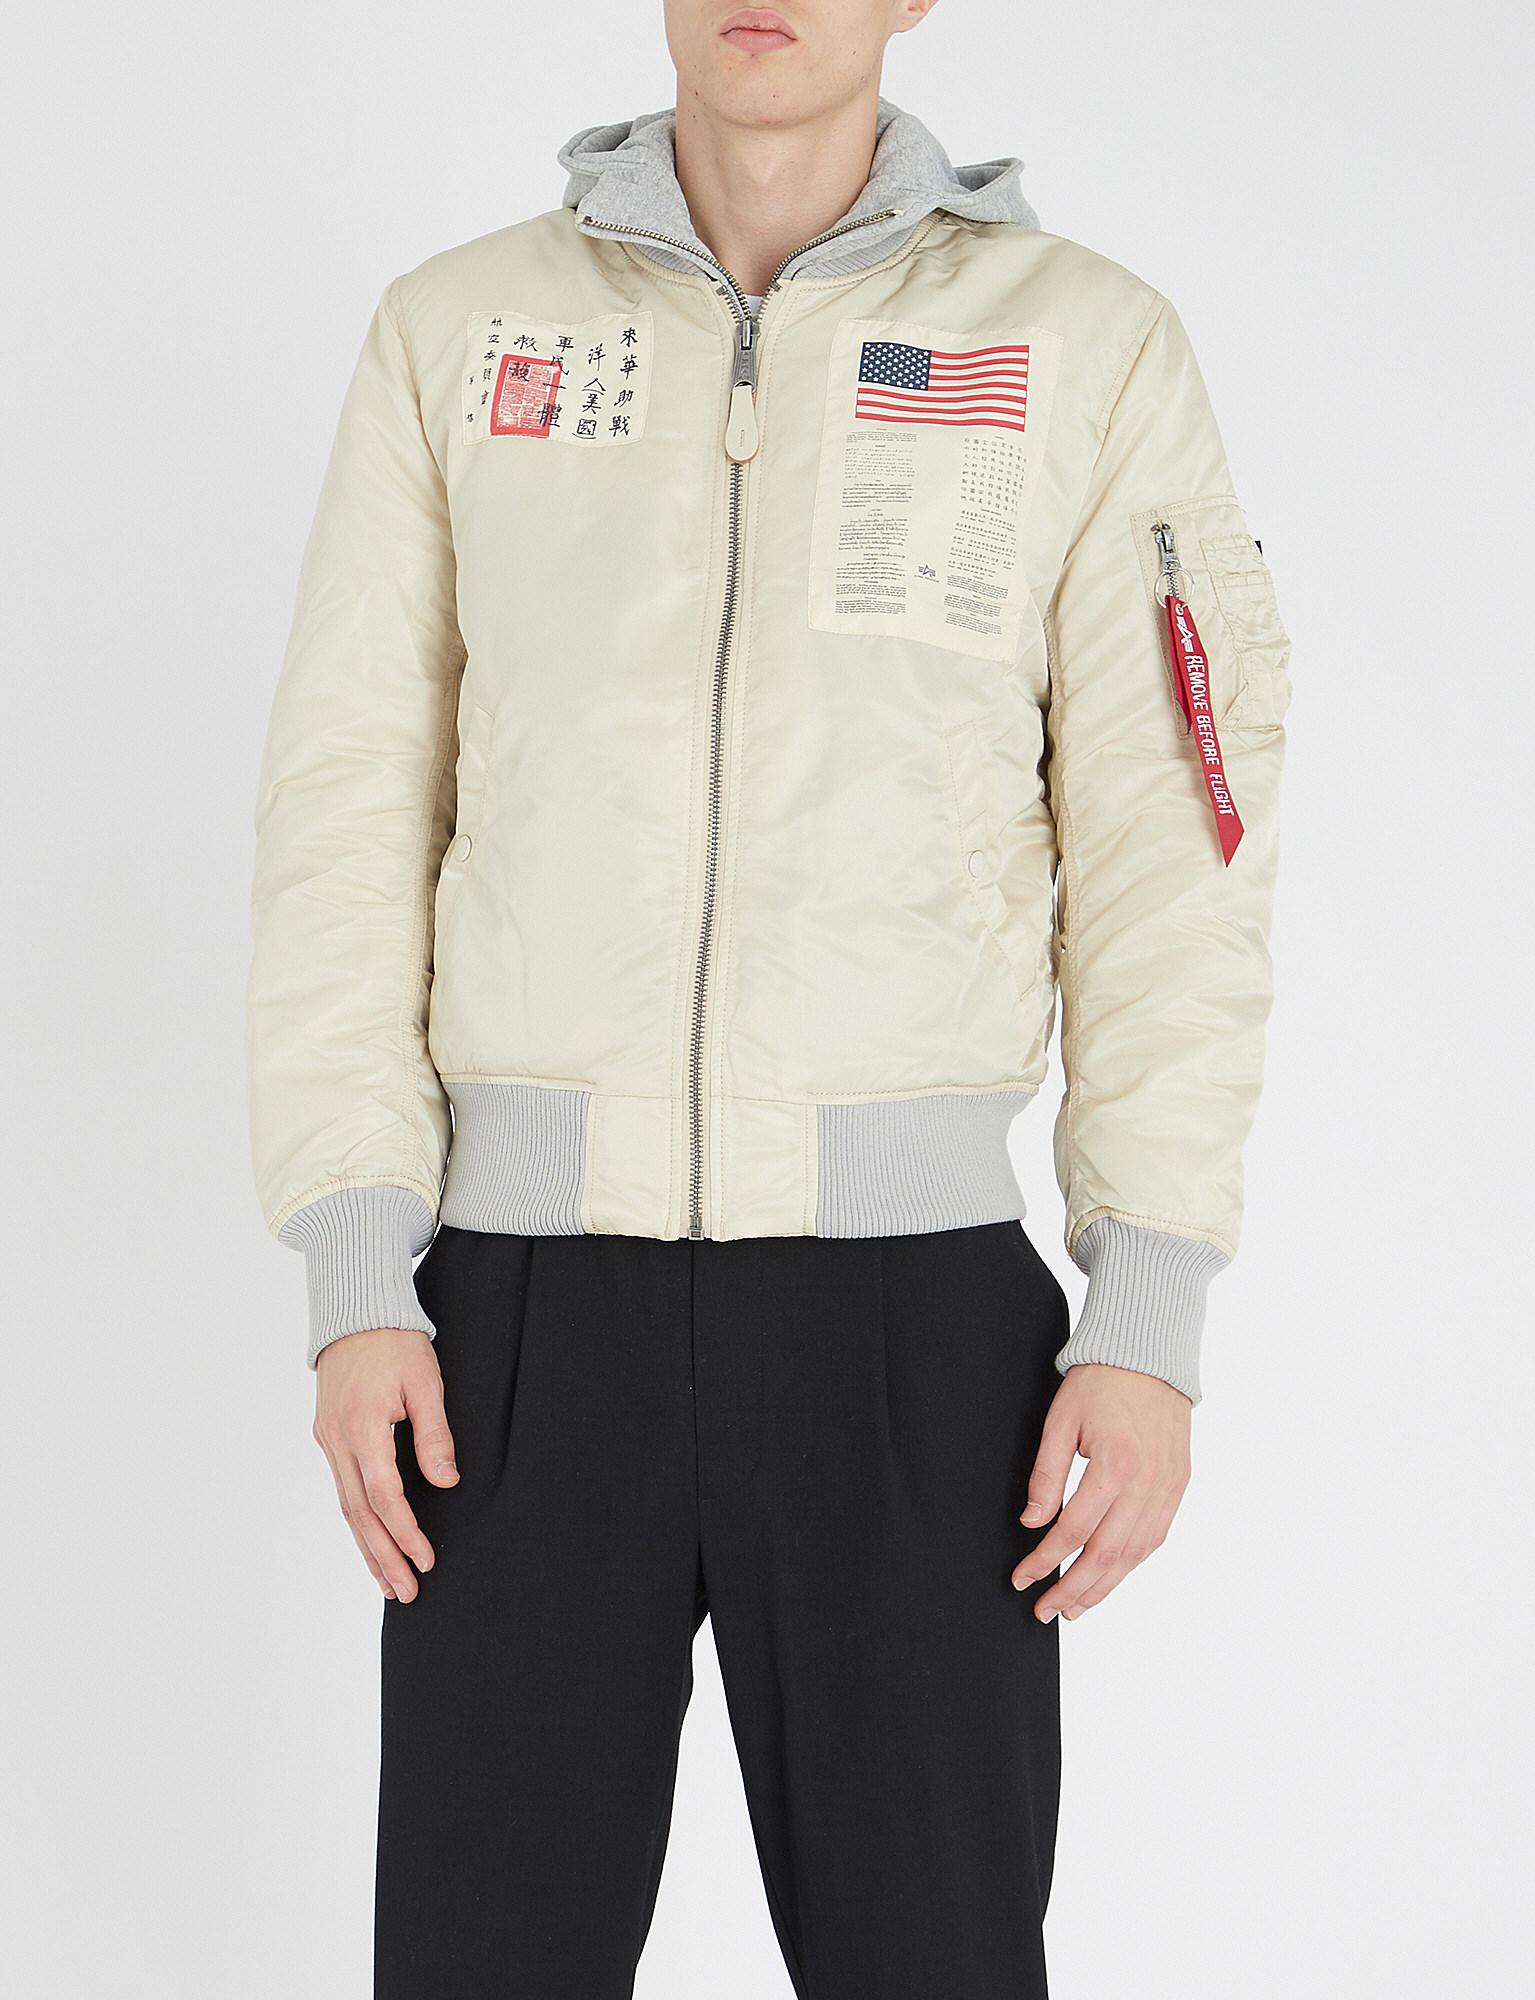 D Tec Alpha Industries Ma 1 D Tec Blood Chit Shell Bomber Jacket In